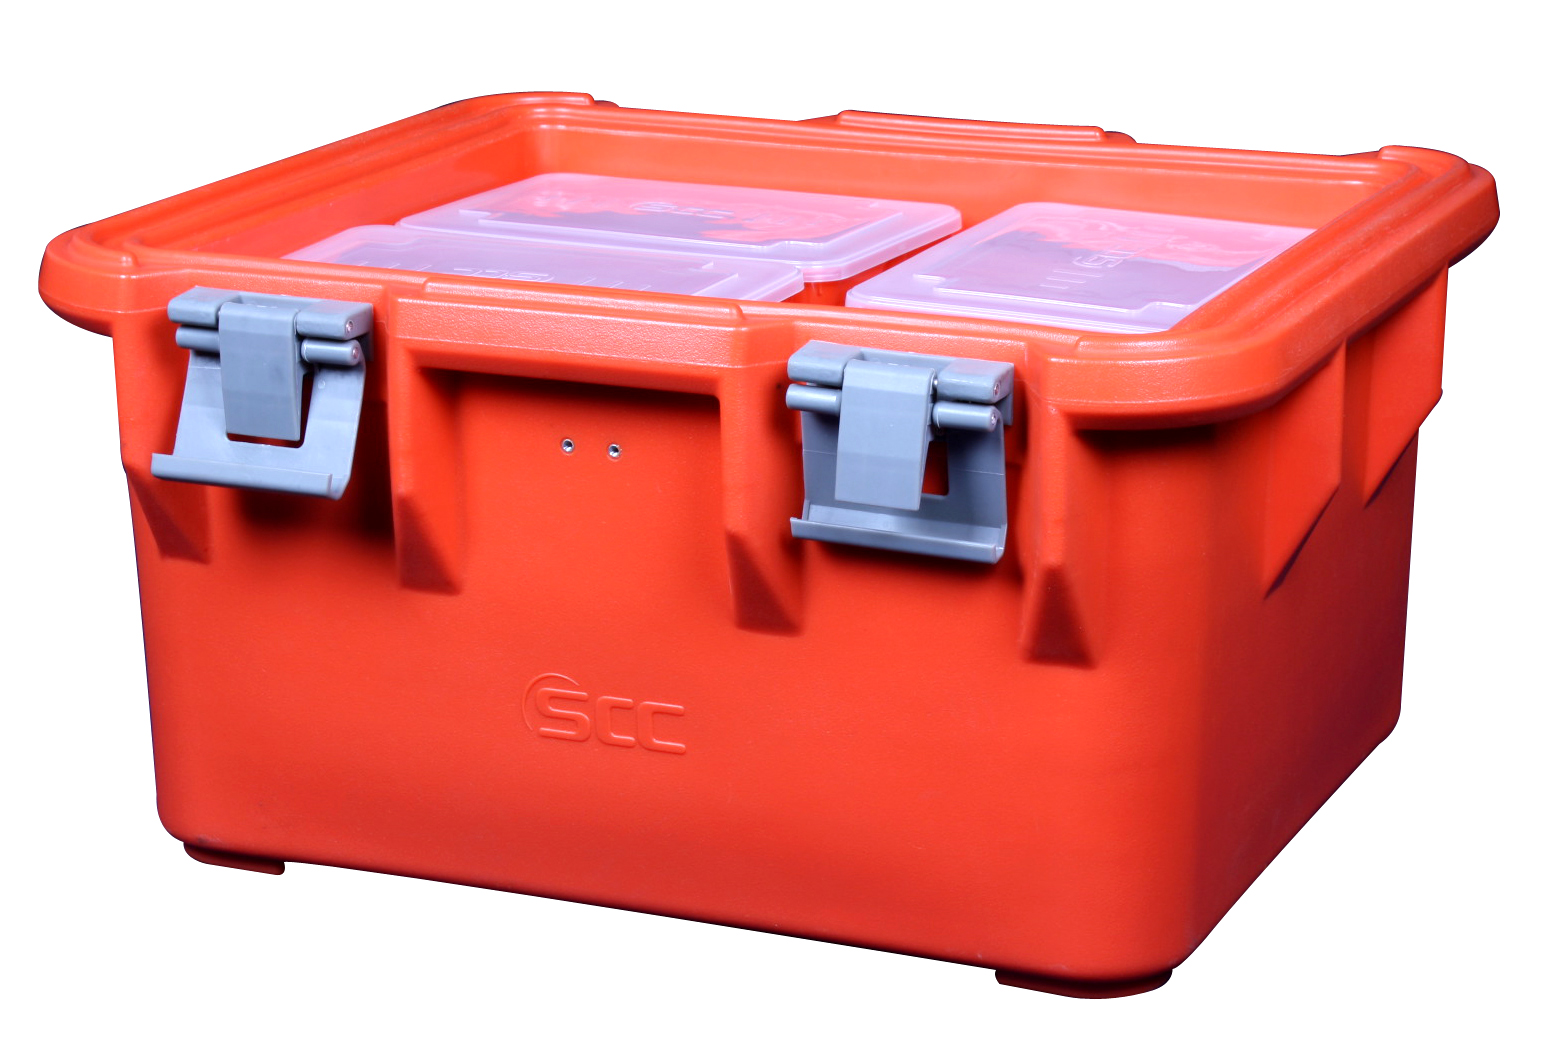 75L Insulated food carrier SB2-A75